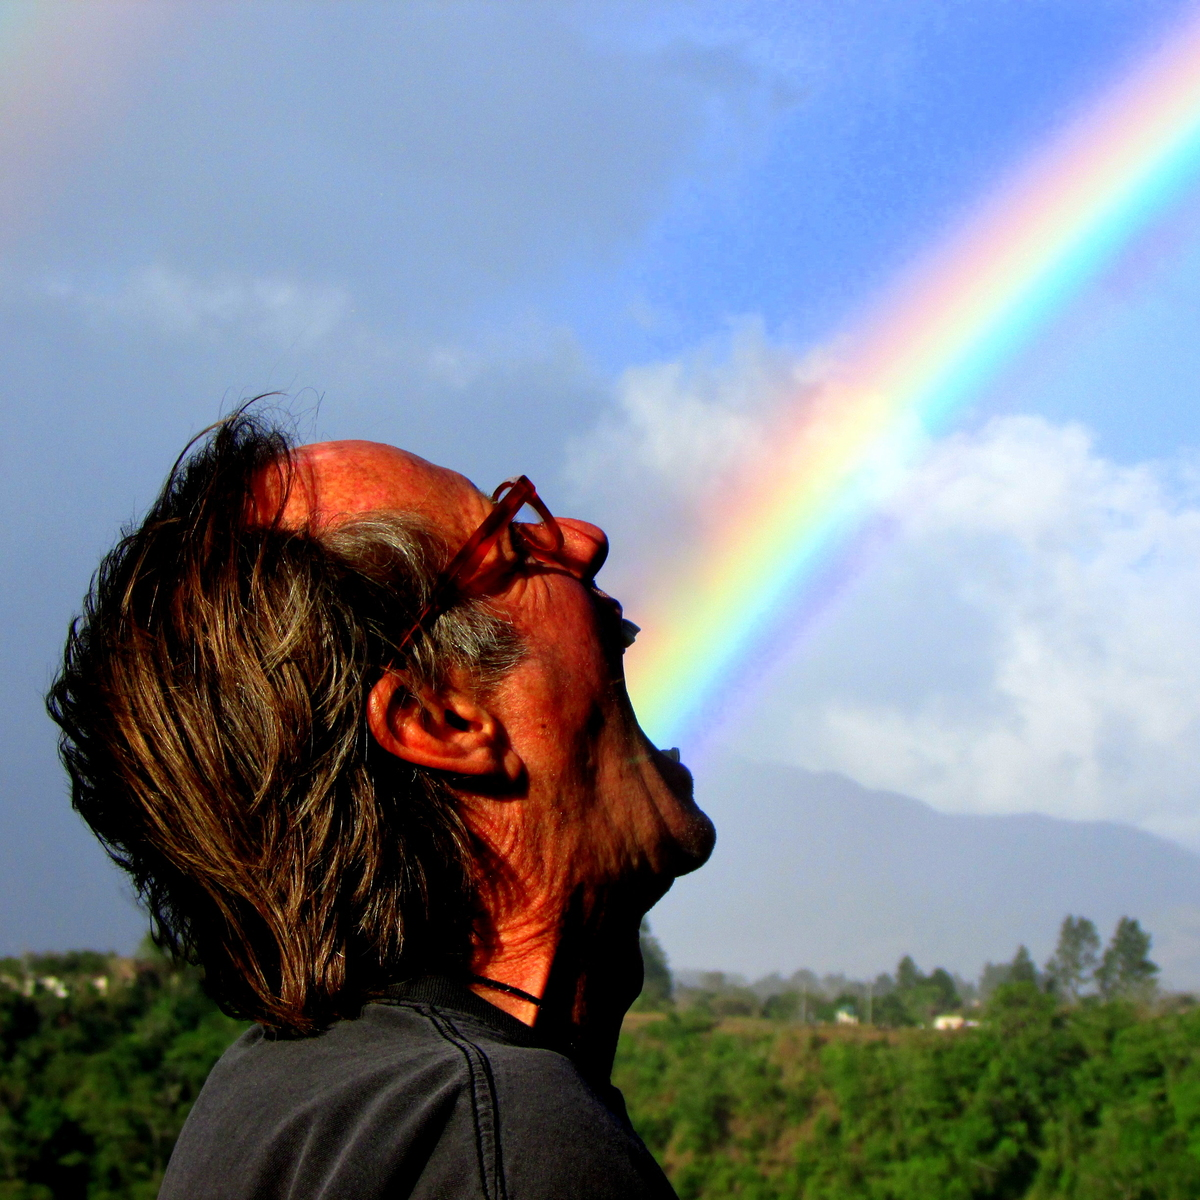 Bill's swallowing up all the rainbows !